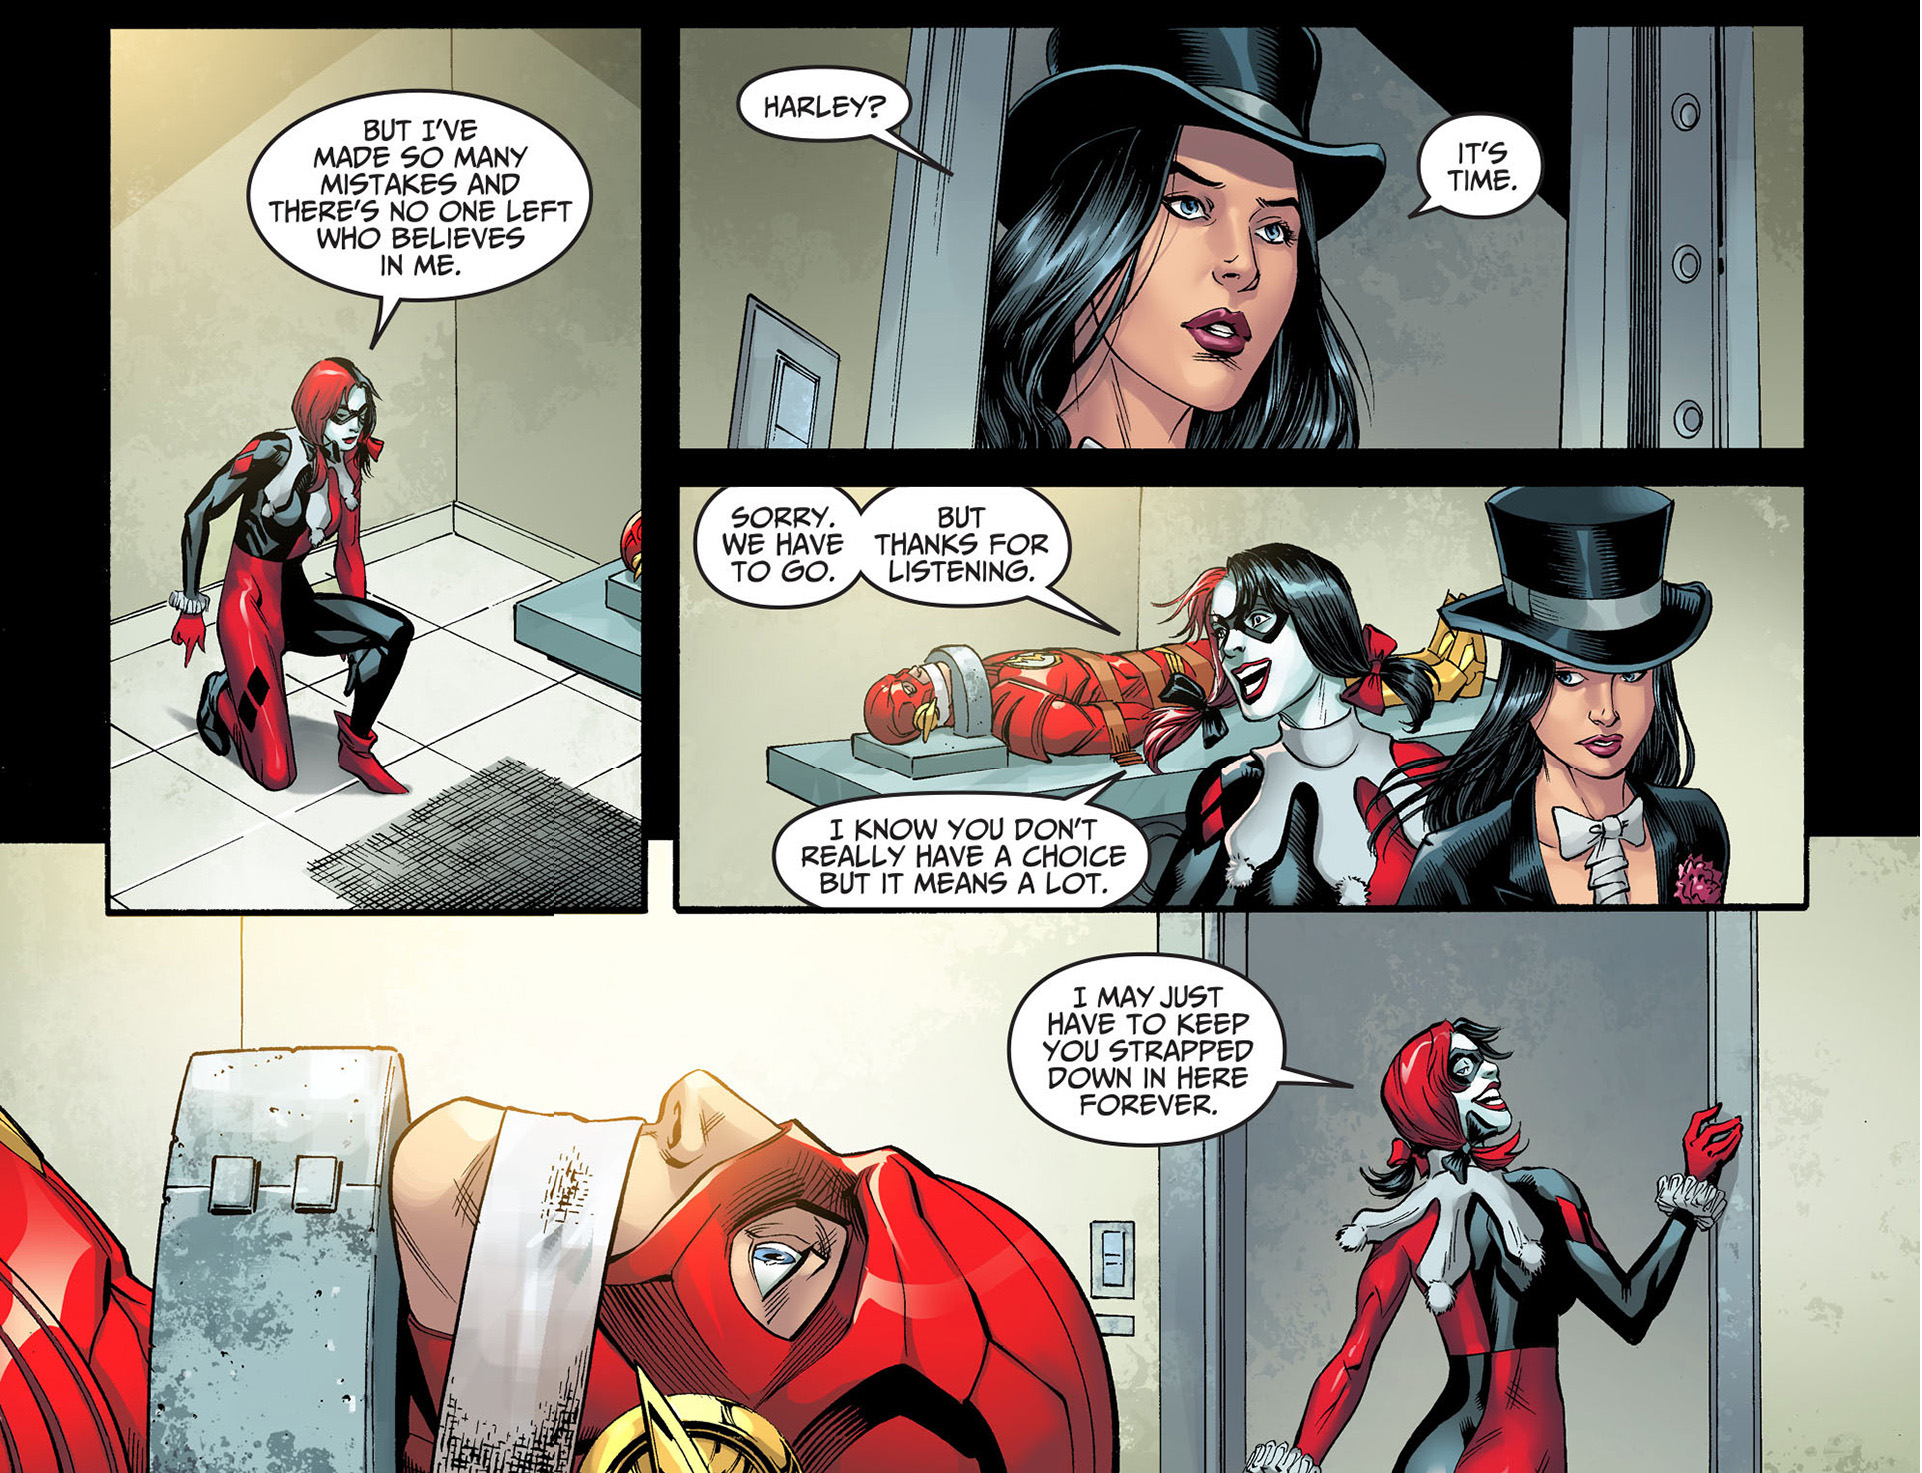 harley quinn tries to bond with the flash